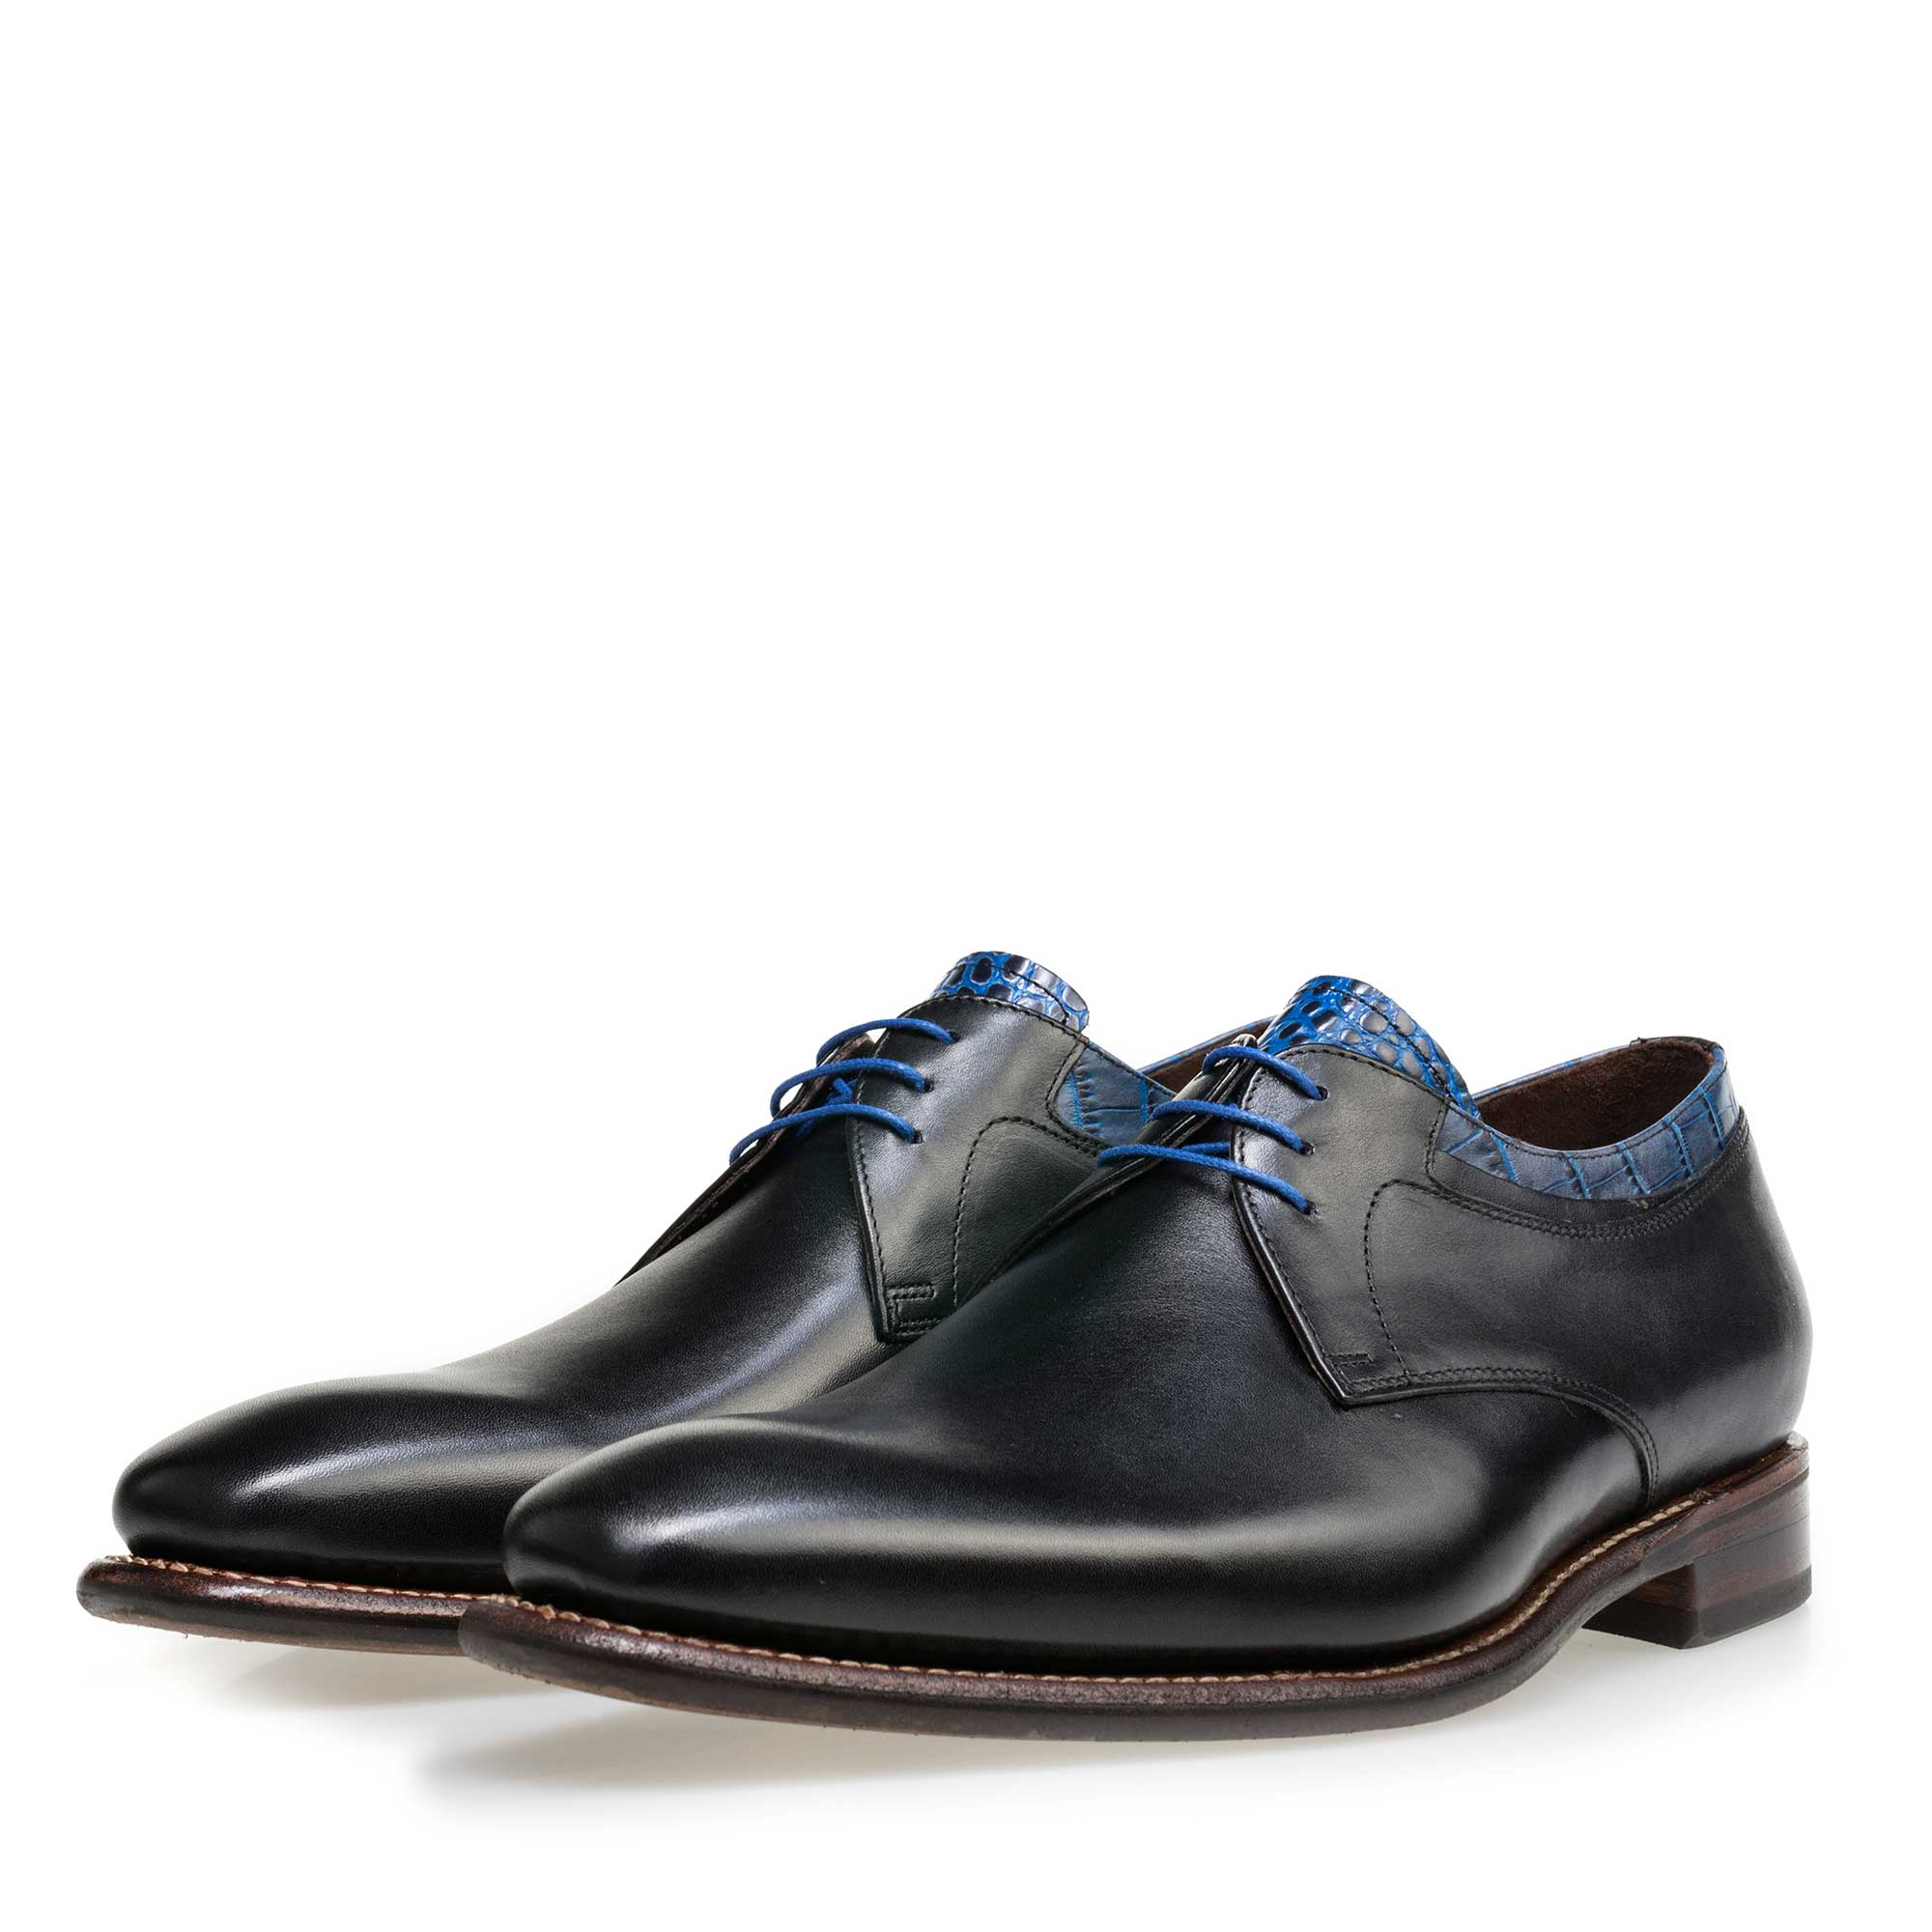 14302/02 - Floris van Bommel black leather men's lace-up shoe